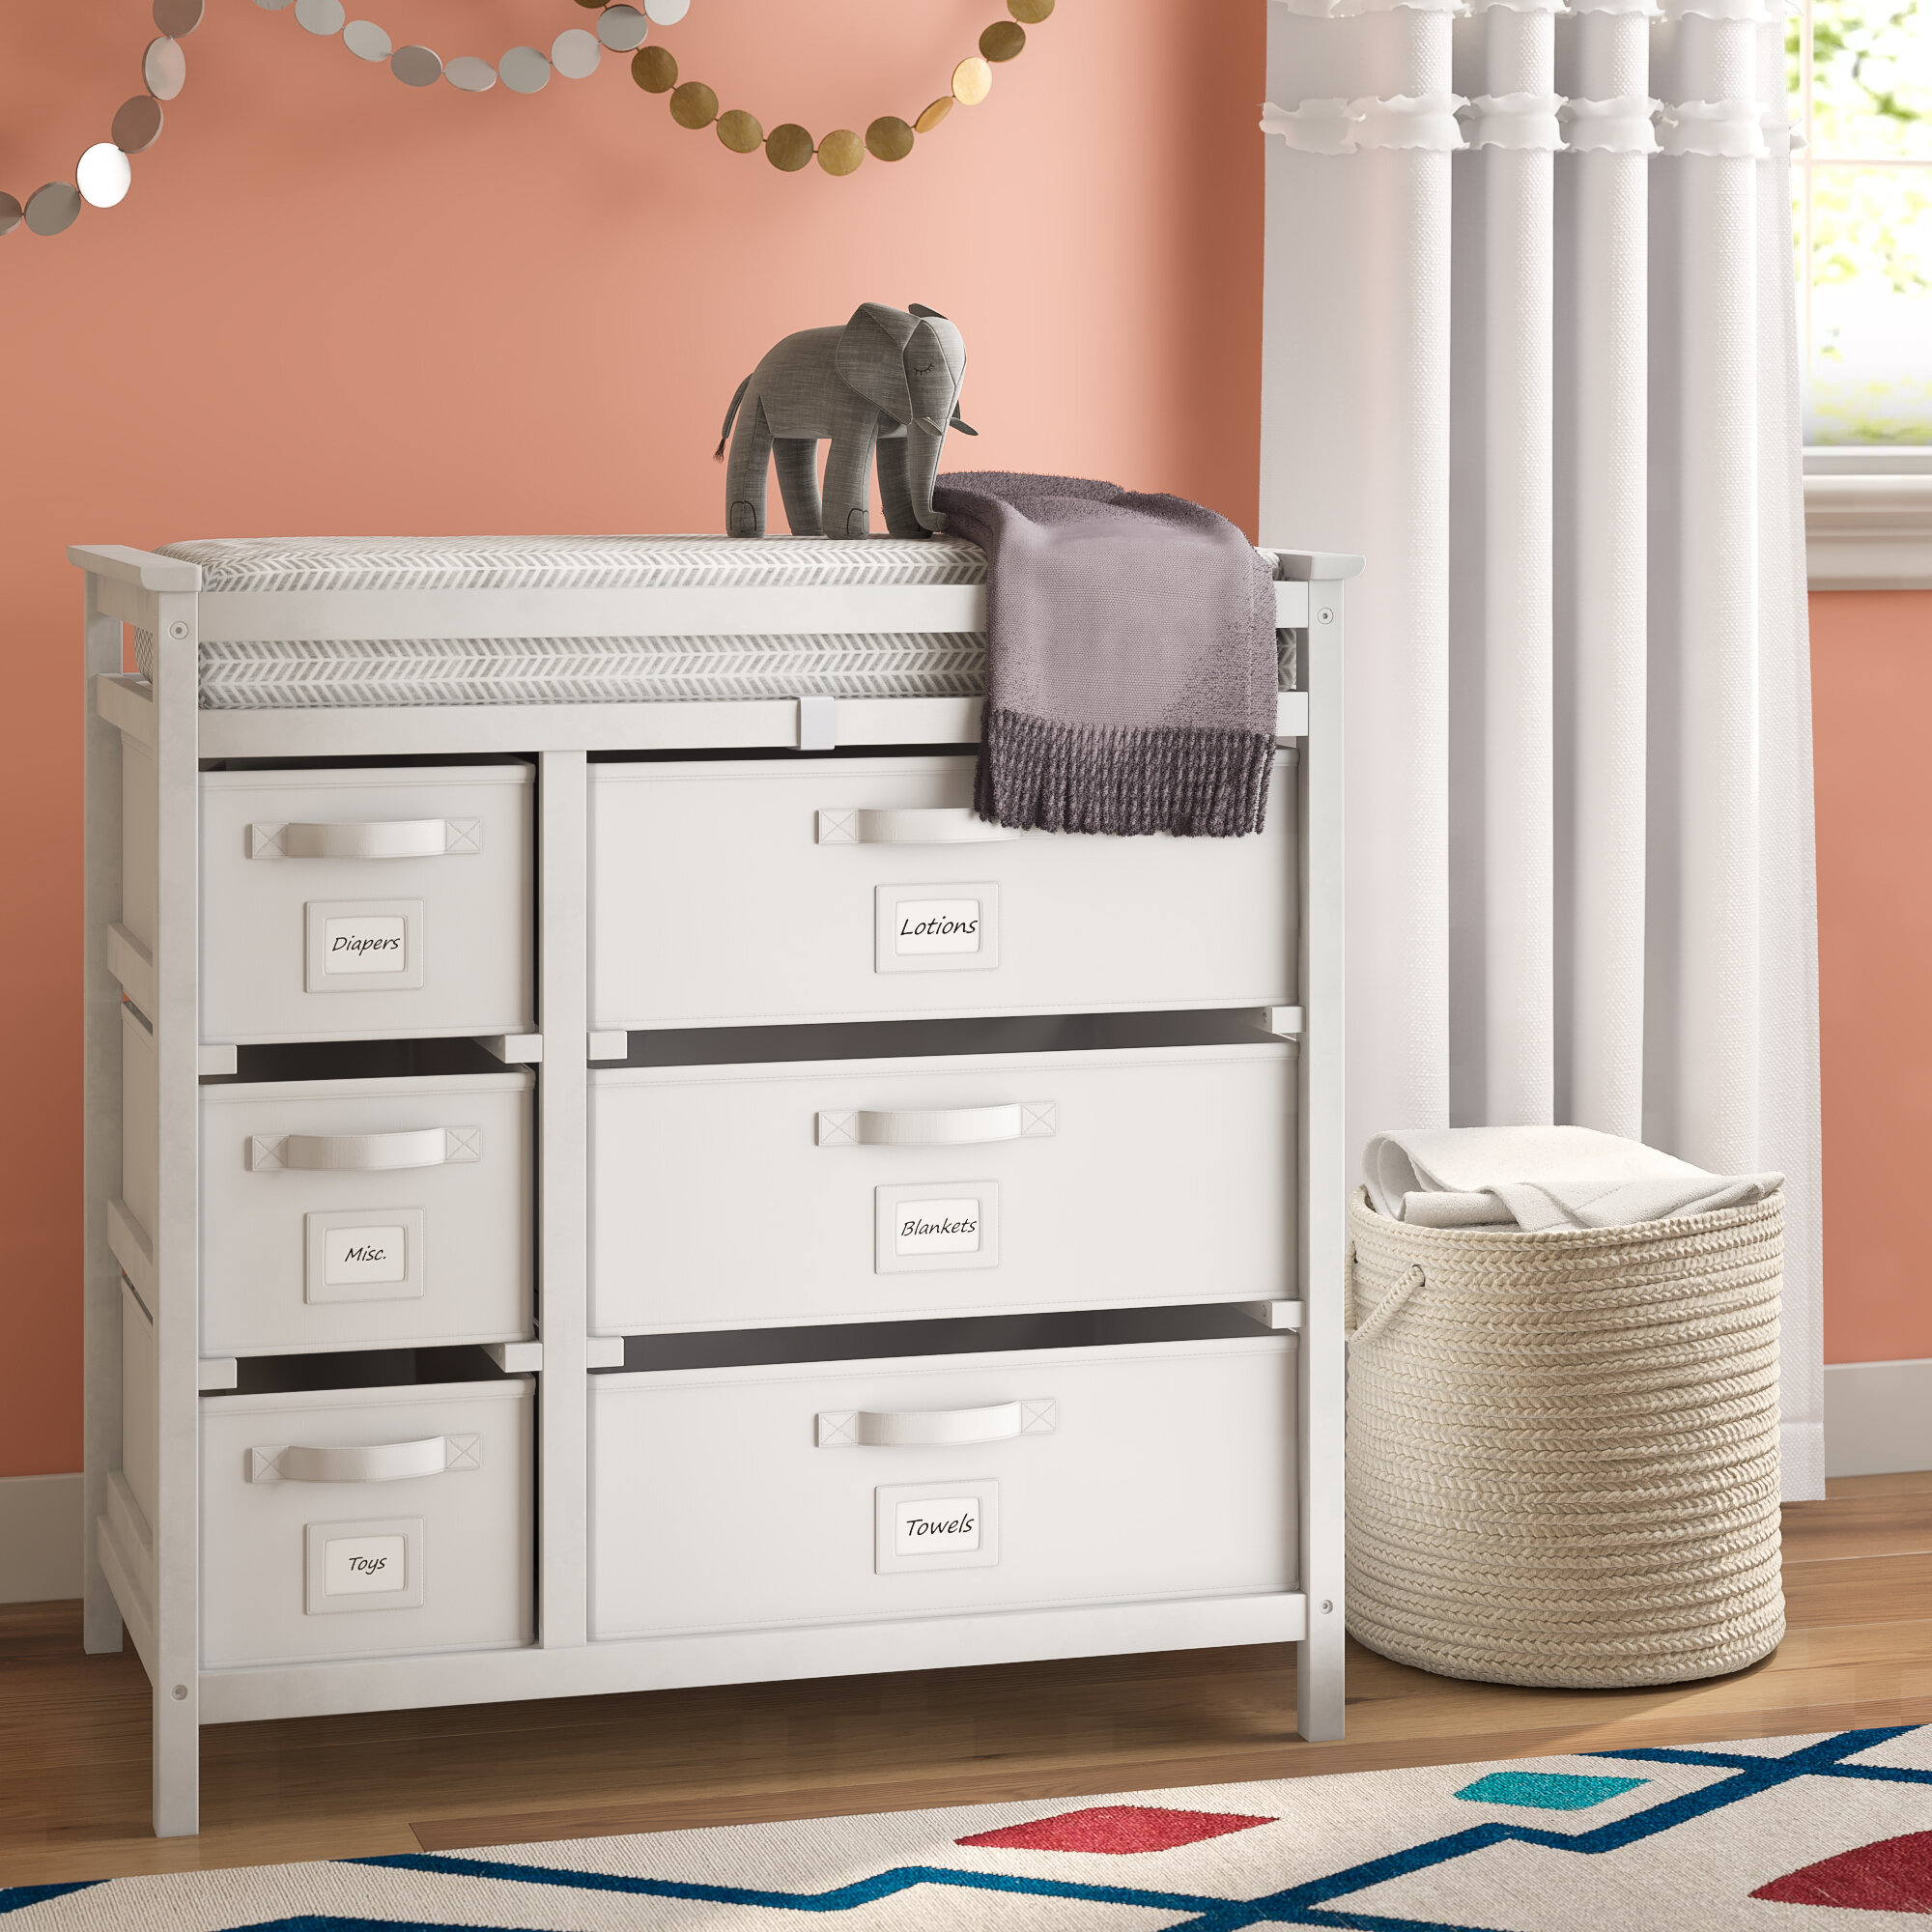 Heid Modern Changing Table with Pad and 6 Baskets